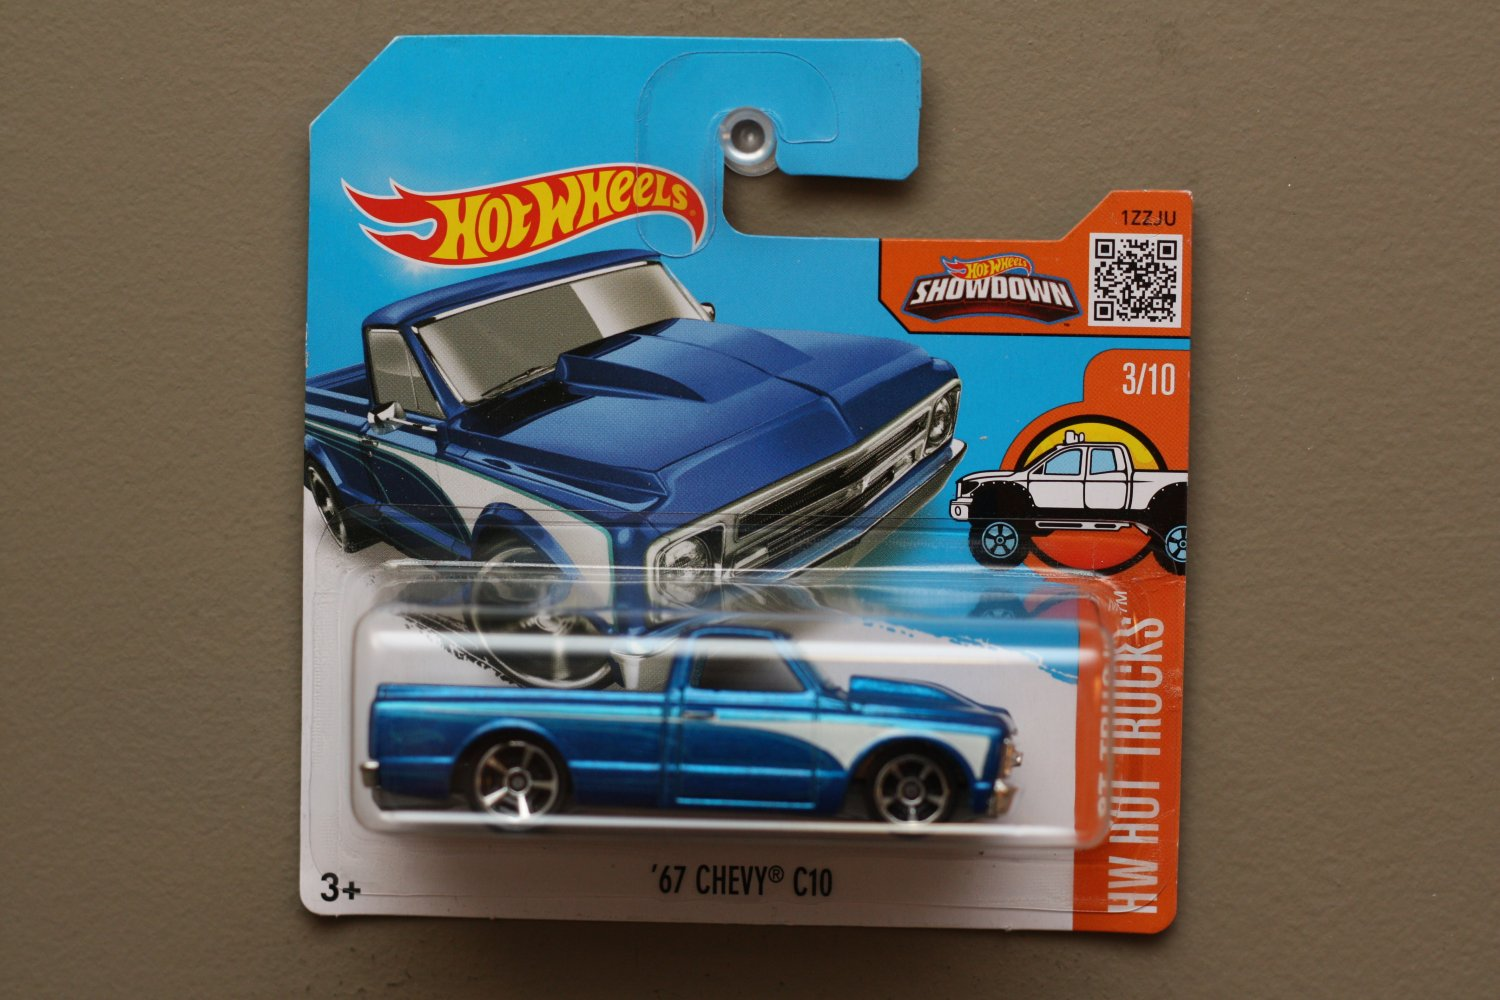 Hot wheels 2016 hw hot trucks 39 67 chevy c10 blue for 9 salon hot wheels 2016